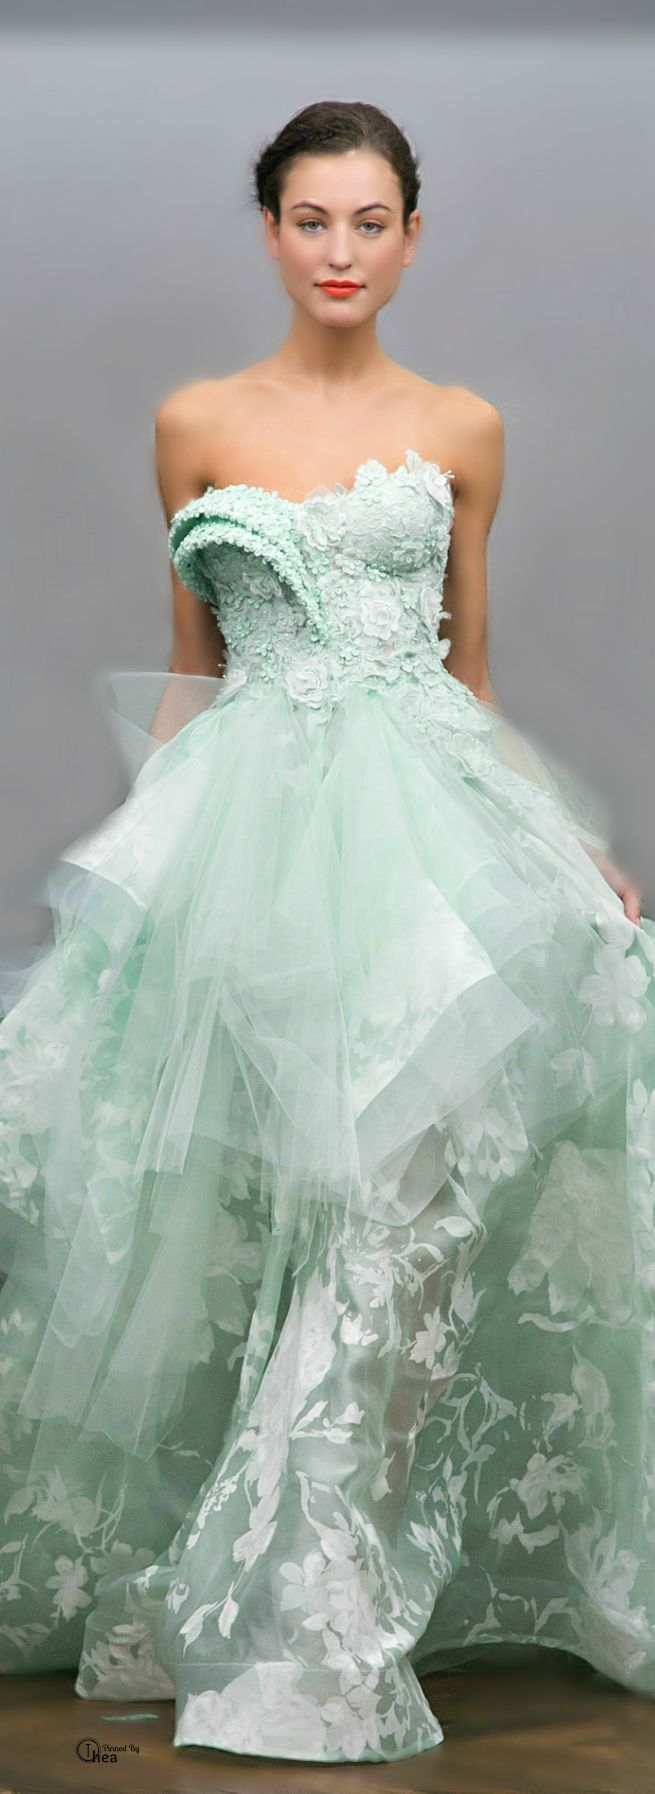 Mint wedding dress with a #sheer skirt could totally use a ...